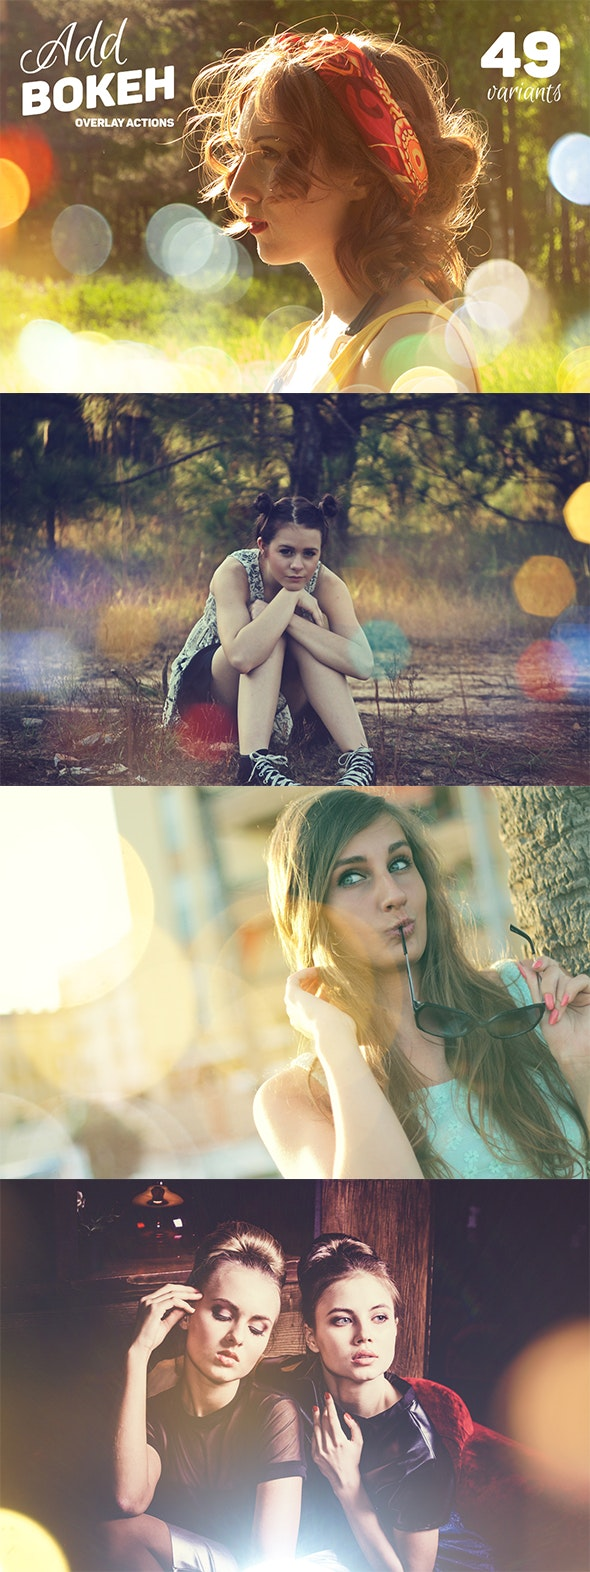 Add Bokeh Overlay Photoshop Actions - Photo Effects Actions